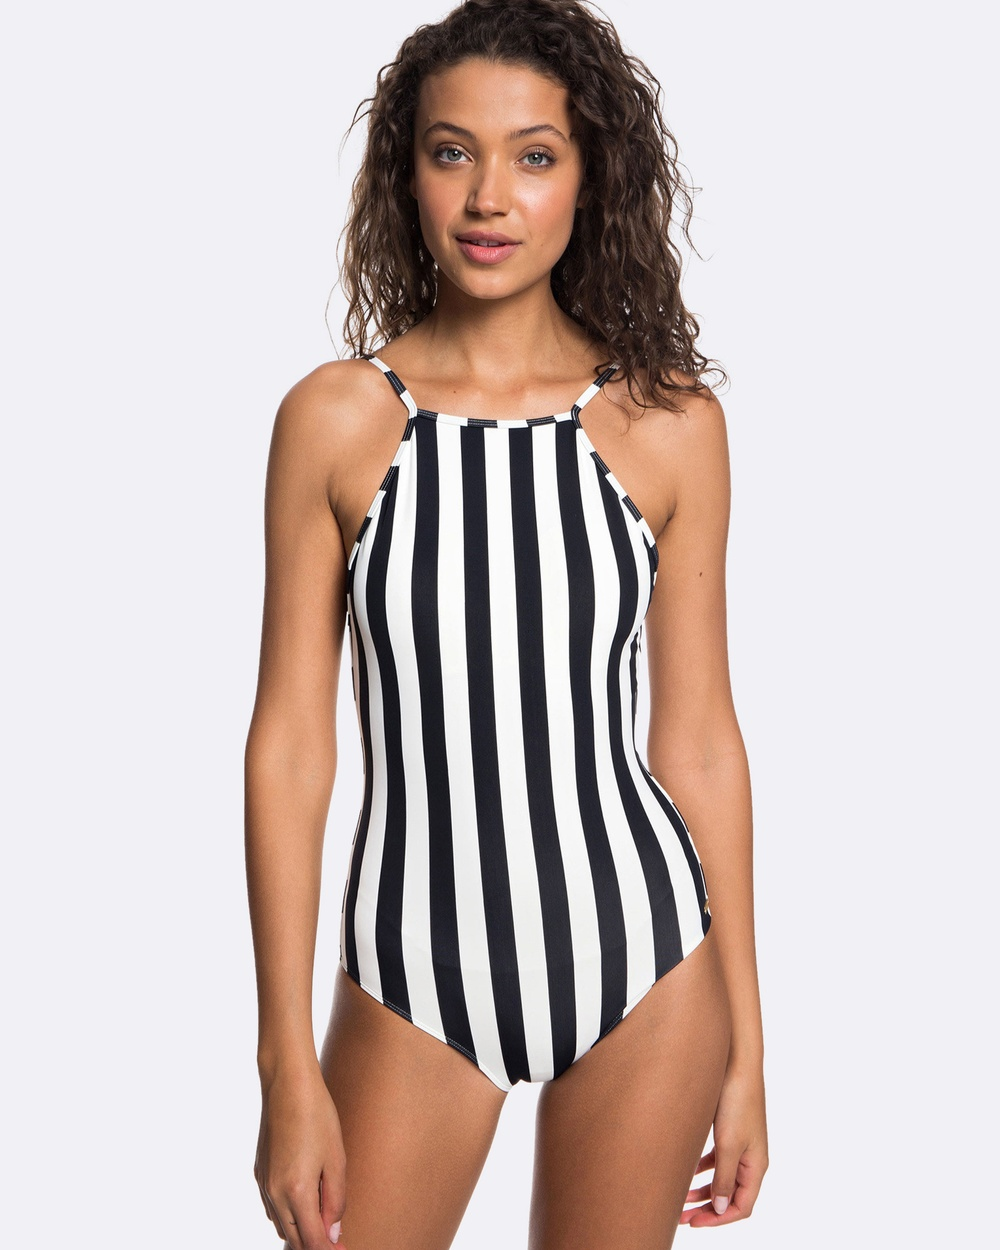 Roxy Womens Beach Basic One Piece Swimsuit One-Piece / Swimsuit TRUE BLACK BIG SIMPL Womens Beach Basic One Piece Swimsuit